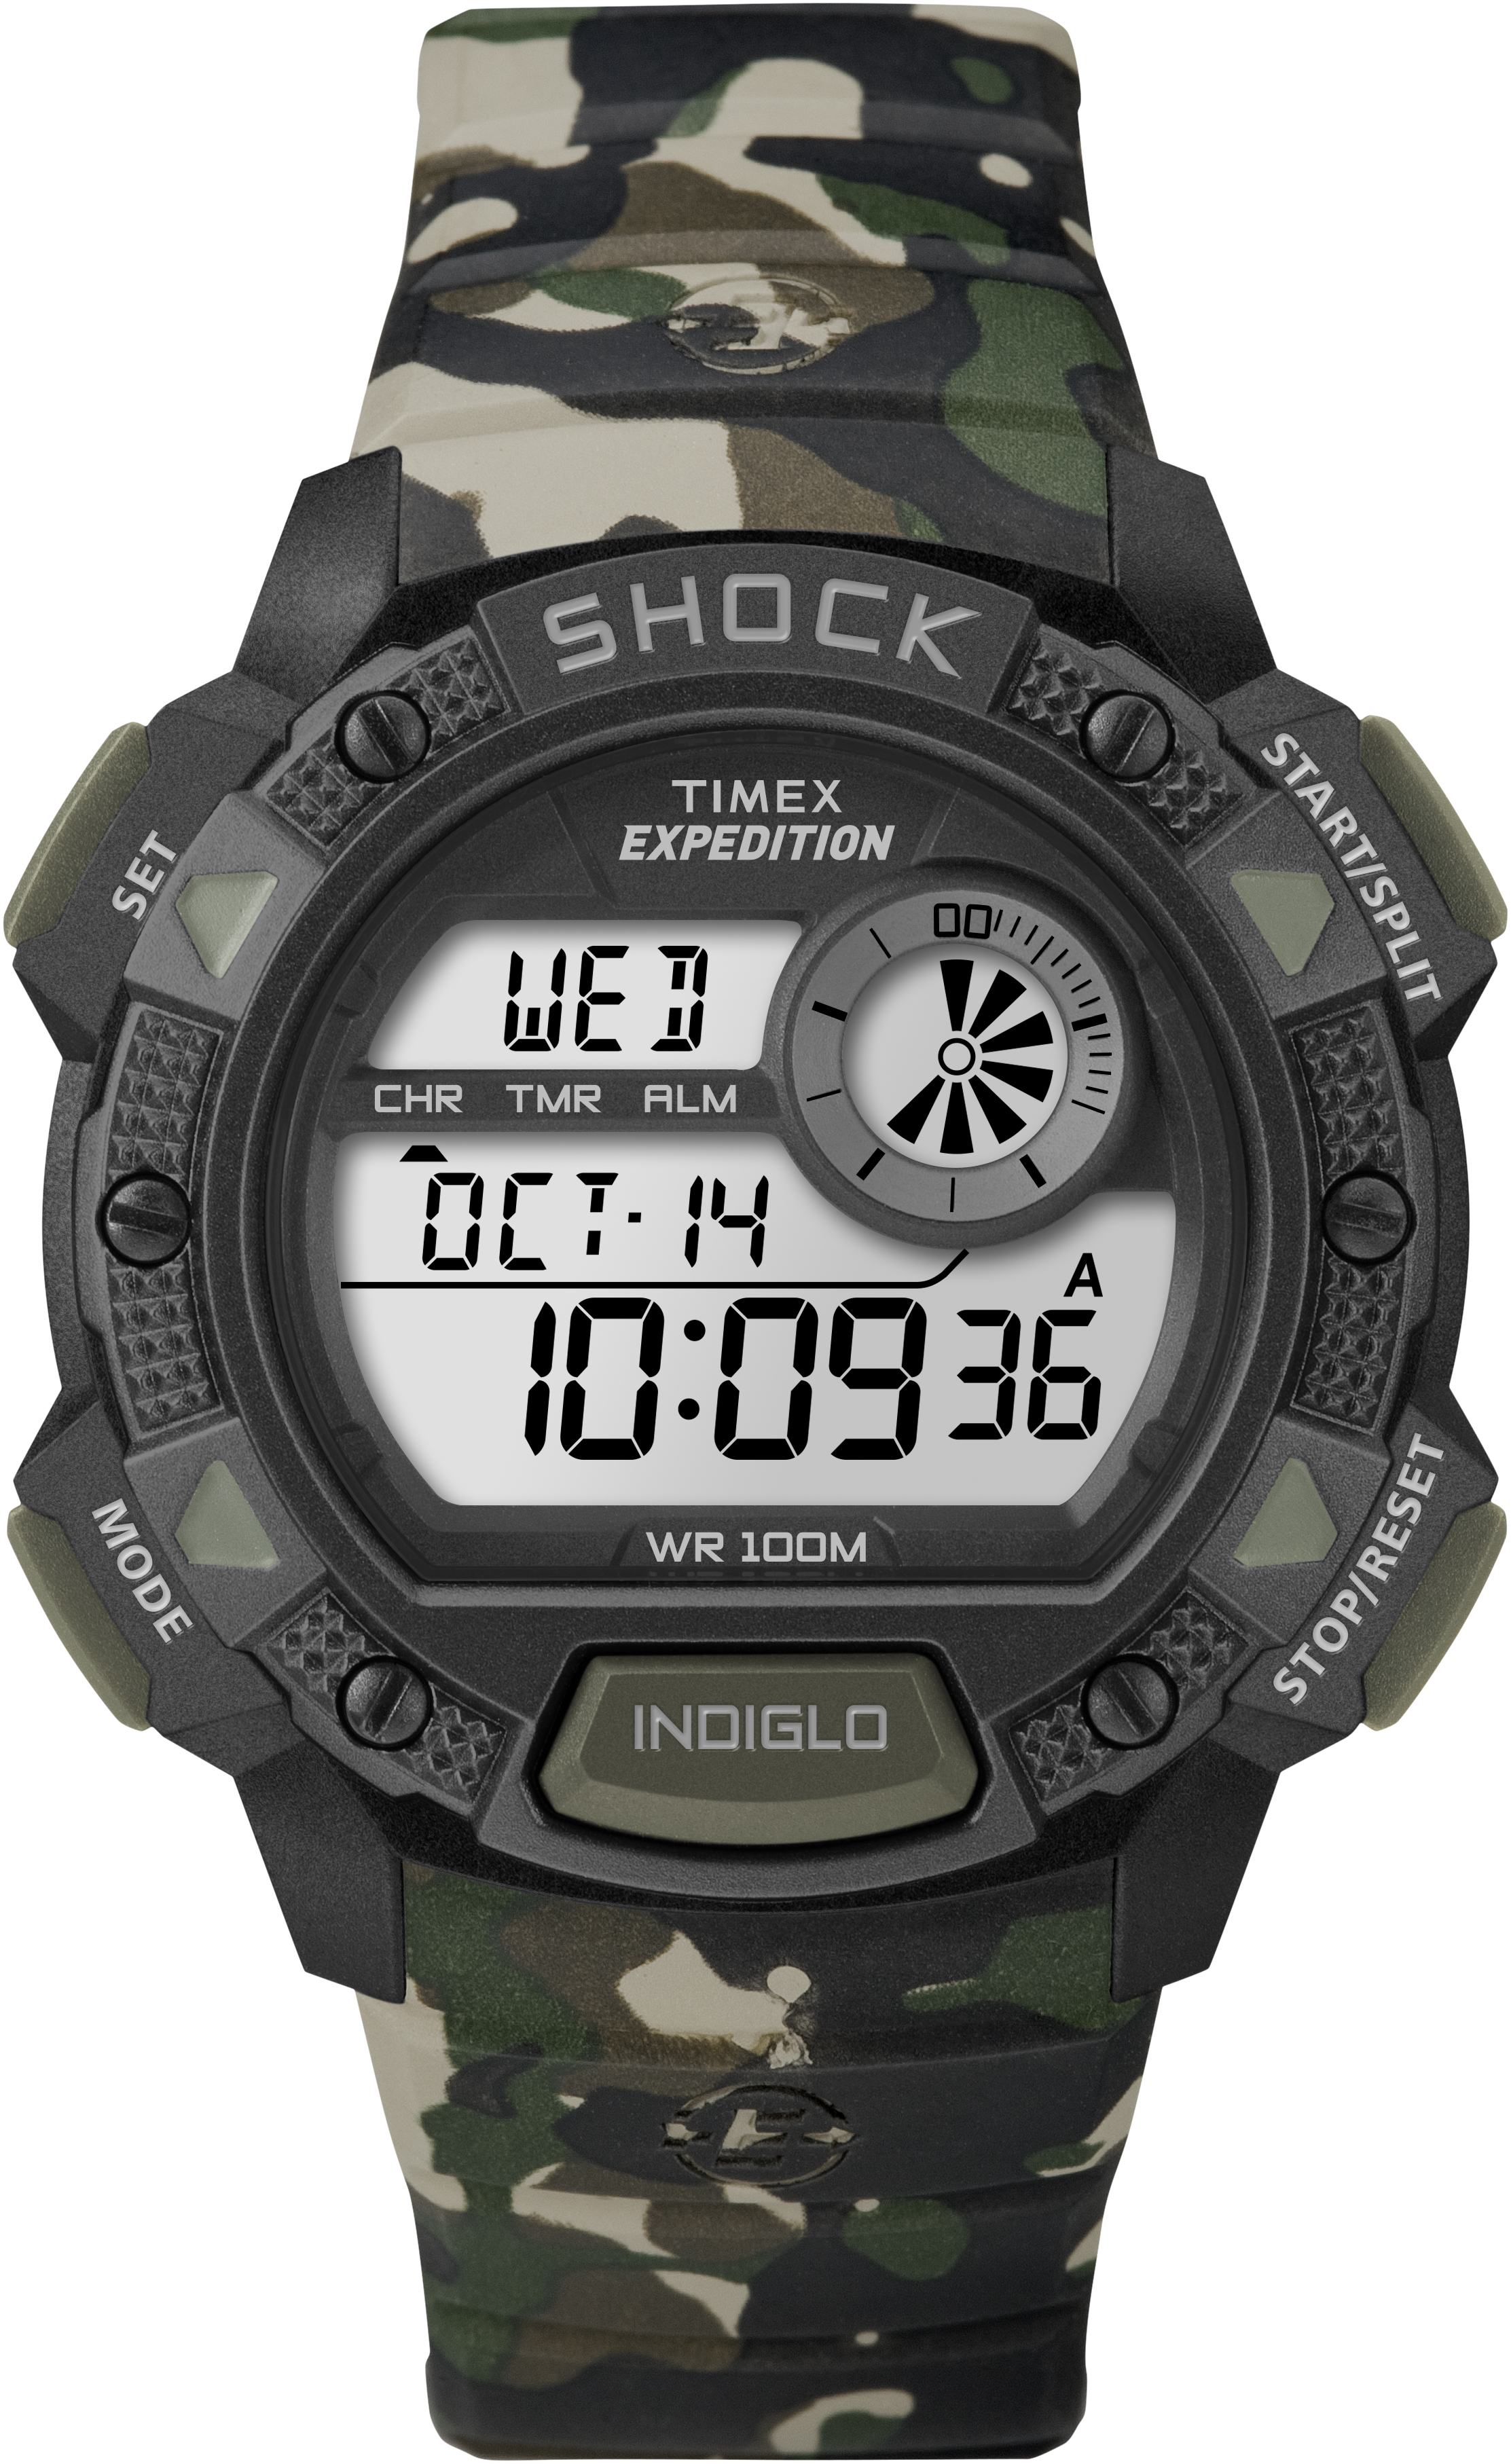 kuala rockgshock watches g end time p shock lelong lumpur my sale htm couple pm